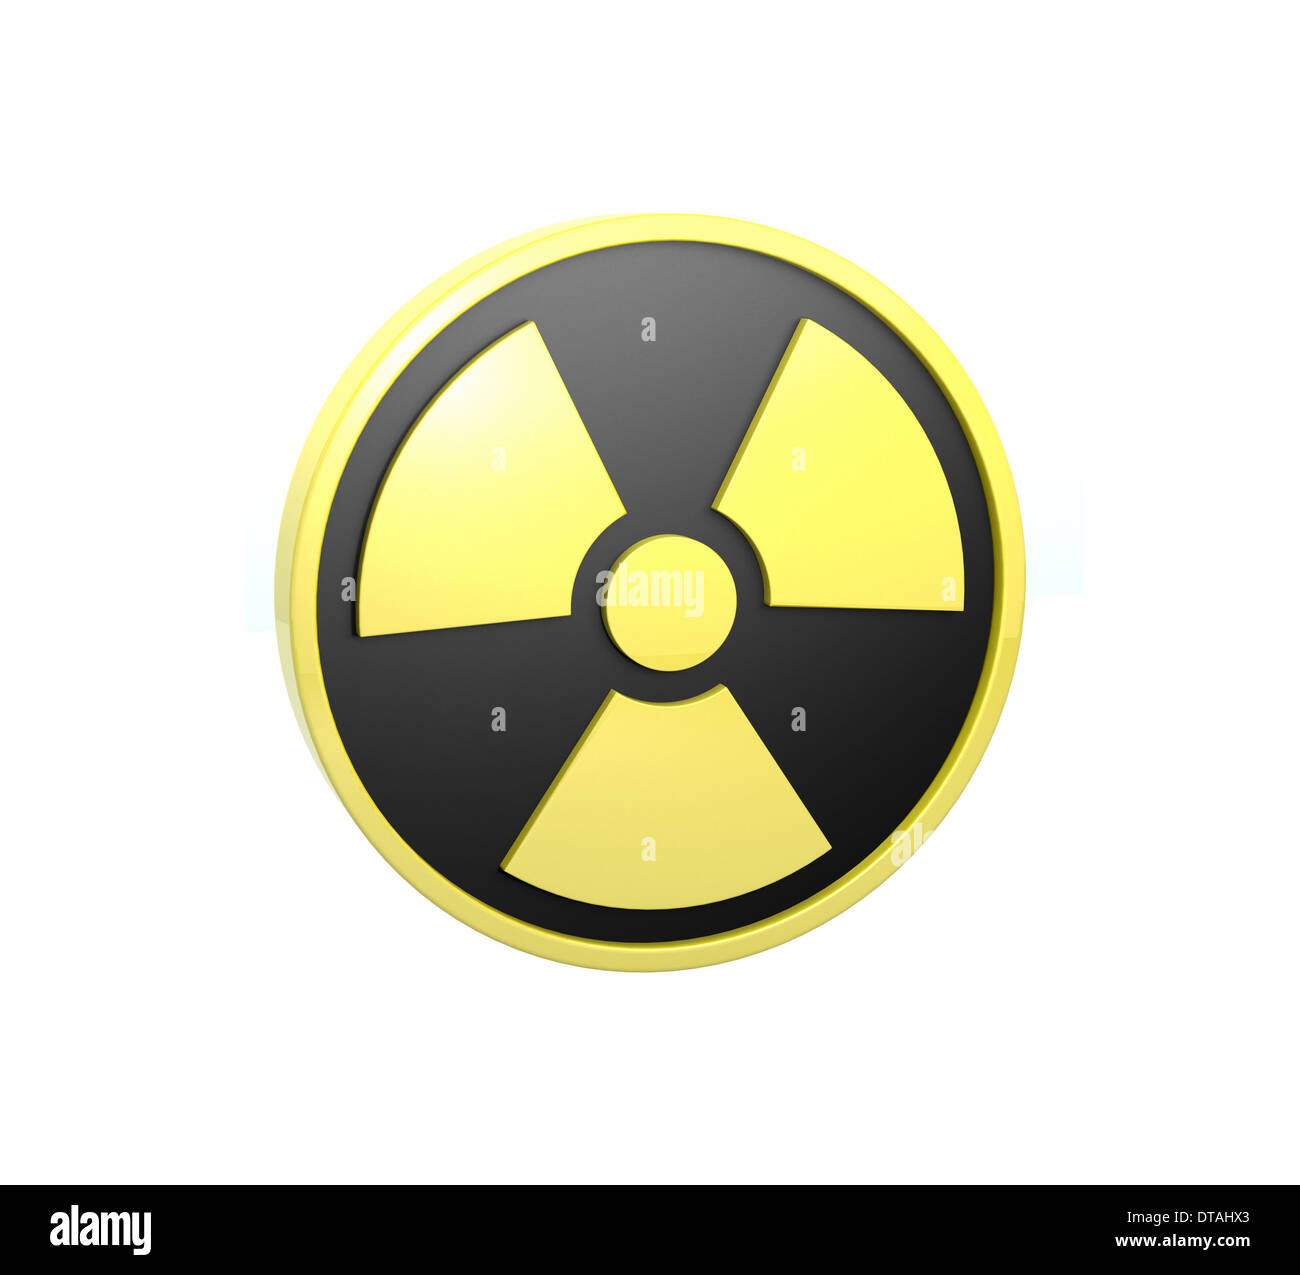 3D radiation sign with highlights isolated on a white background. - Stock Image